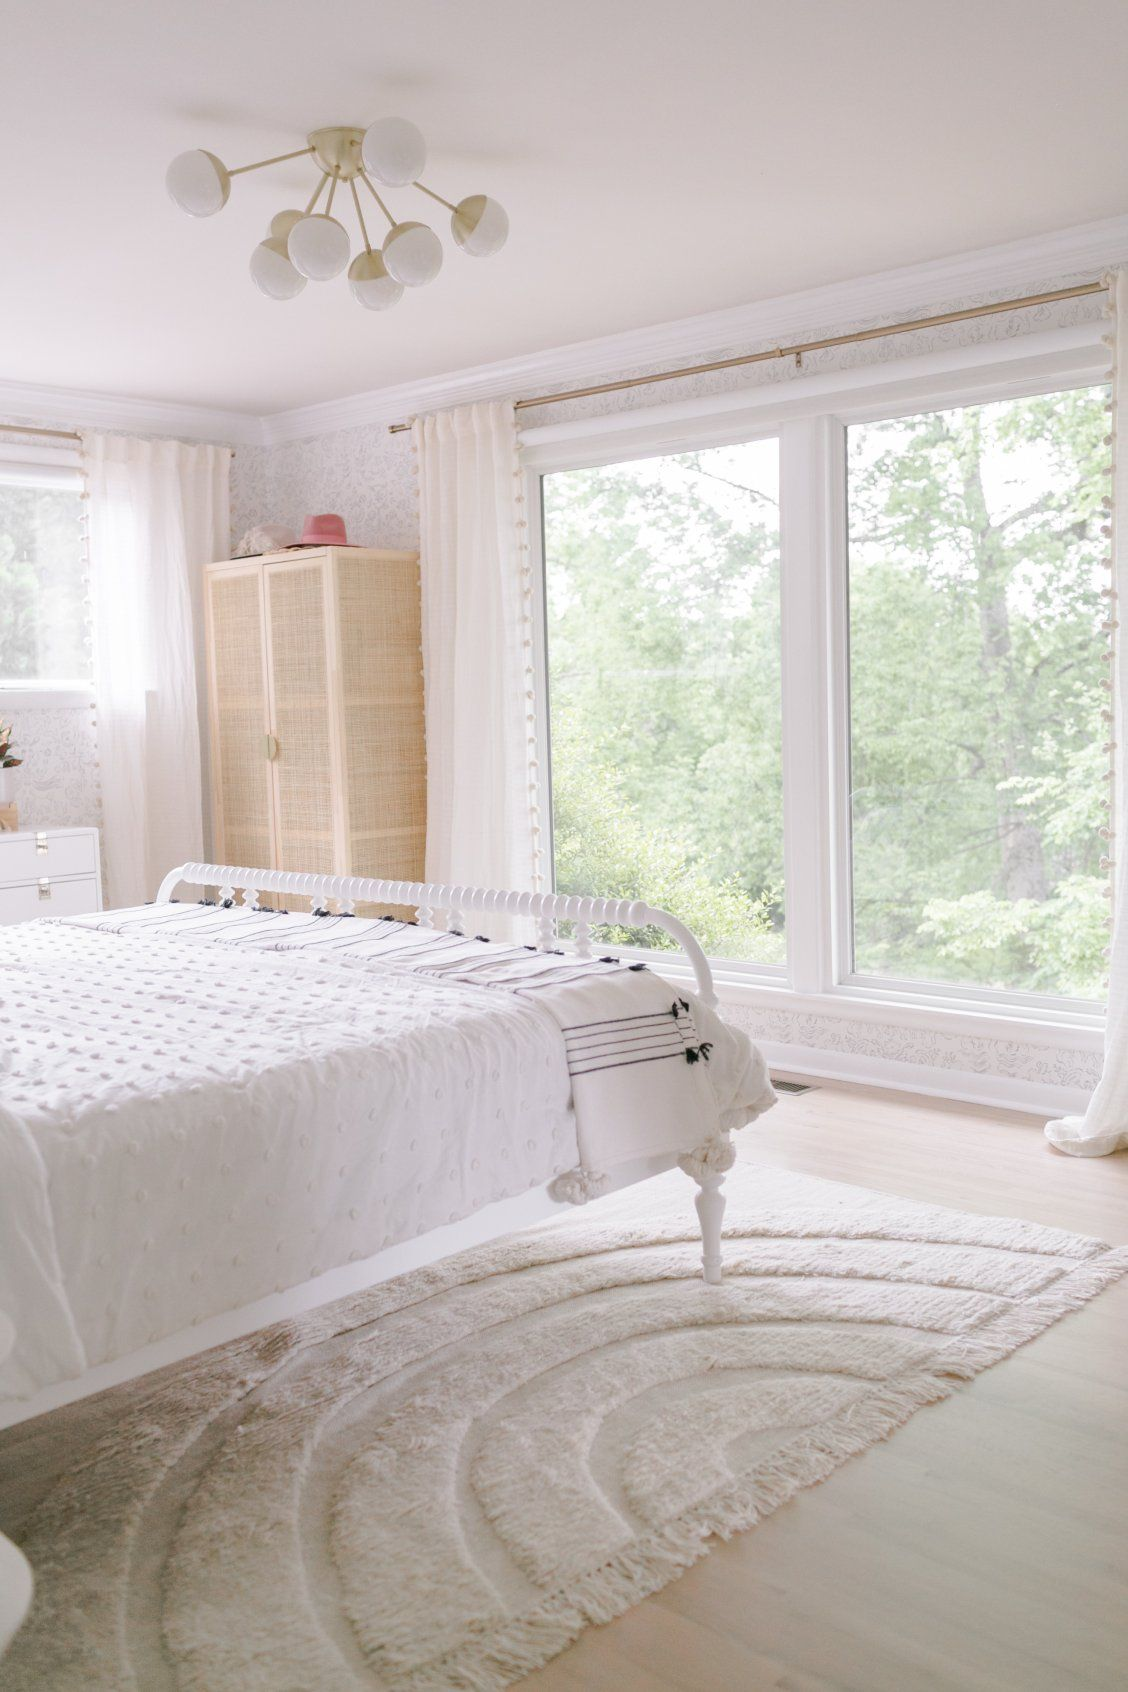 Pin on Window Treatments for Bedrooms